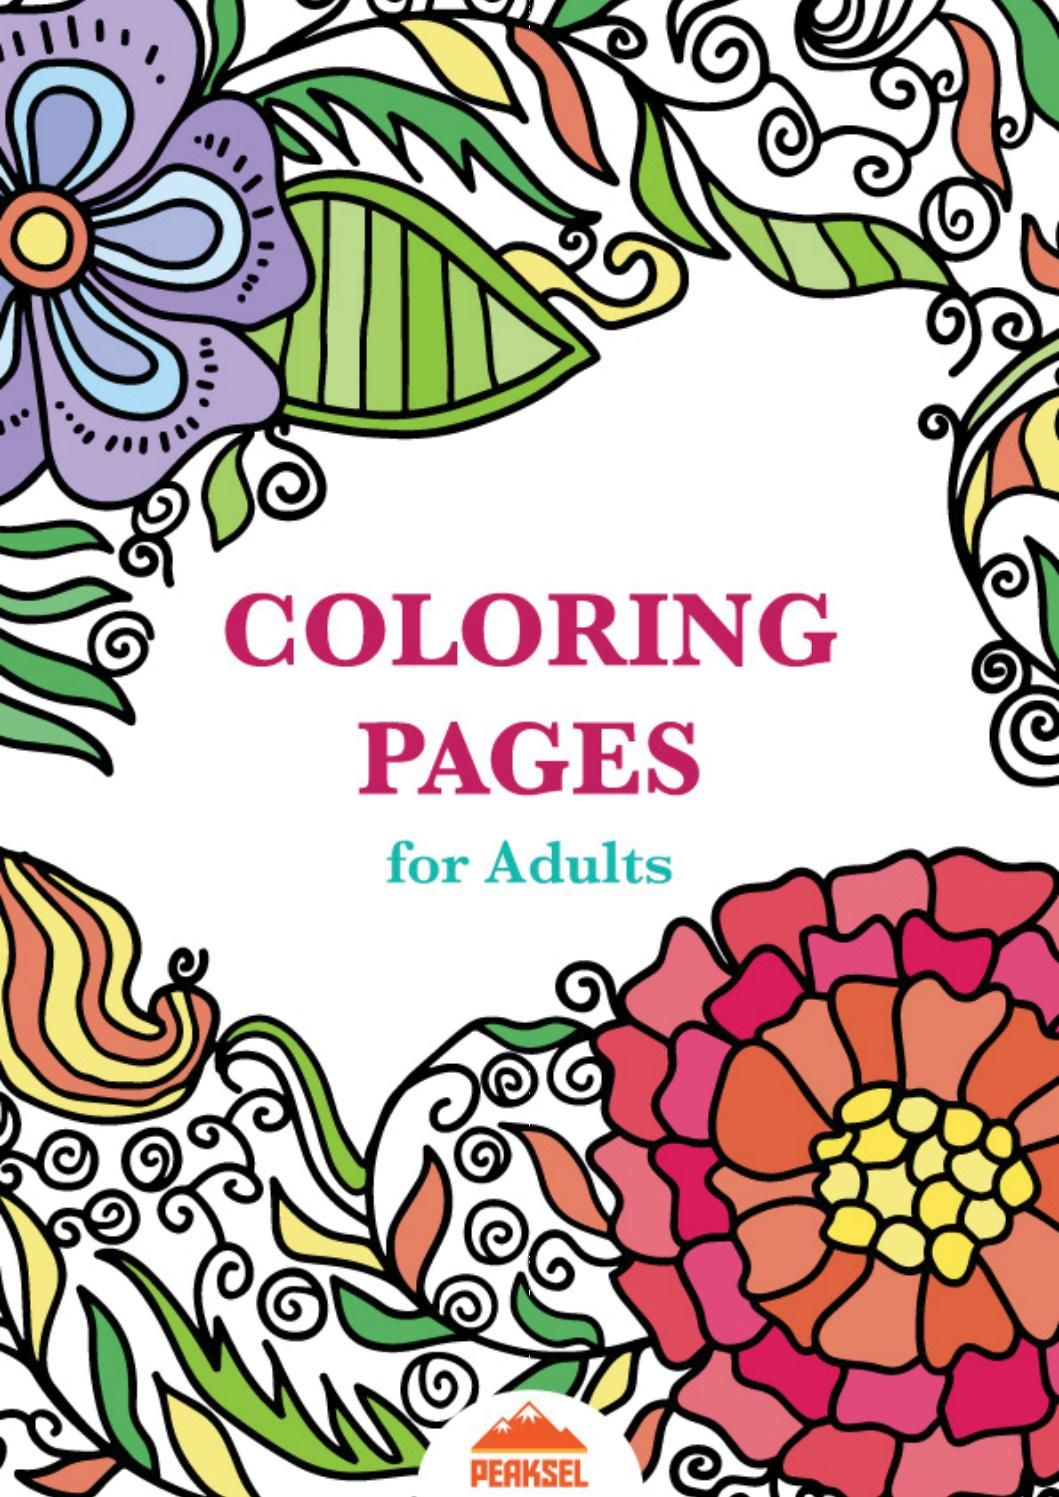 Coloring pages for adults free adult coloring book by marko petkovic issuu